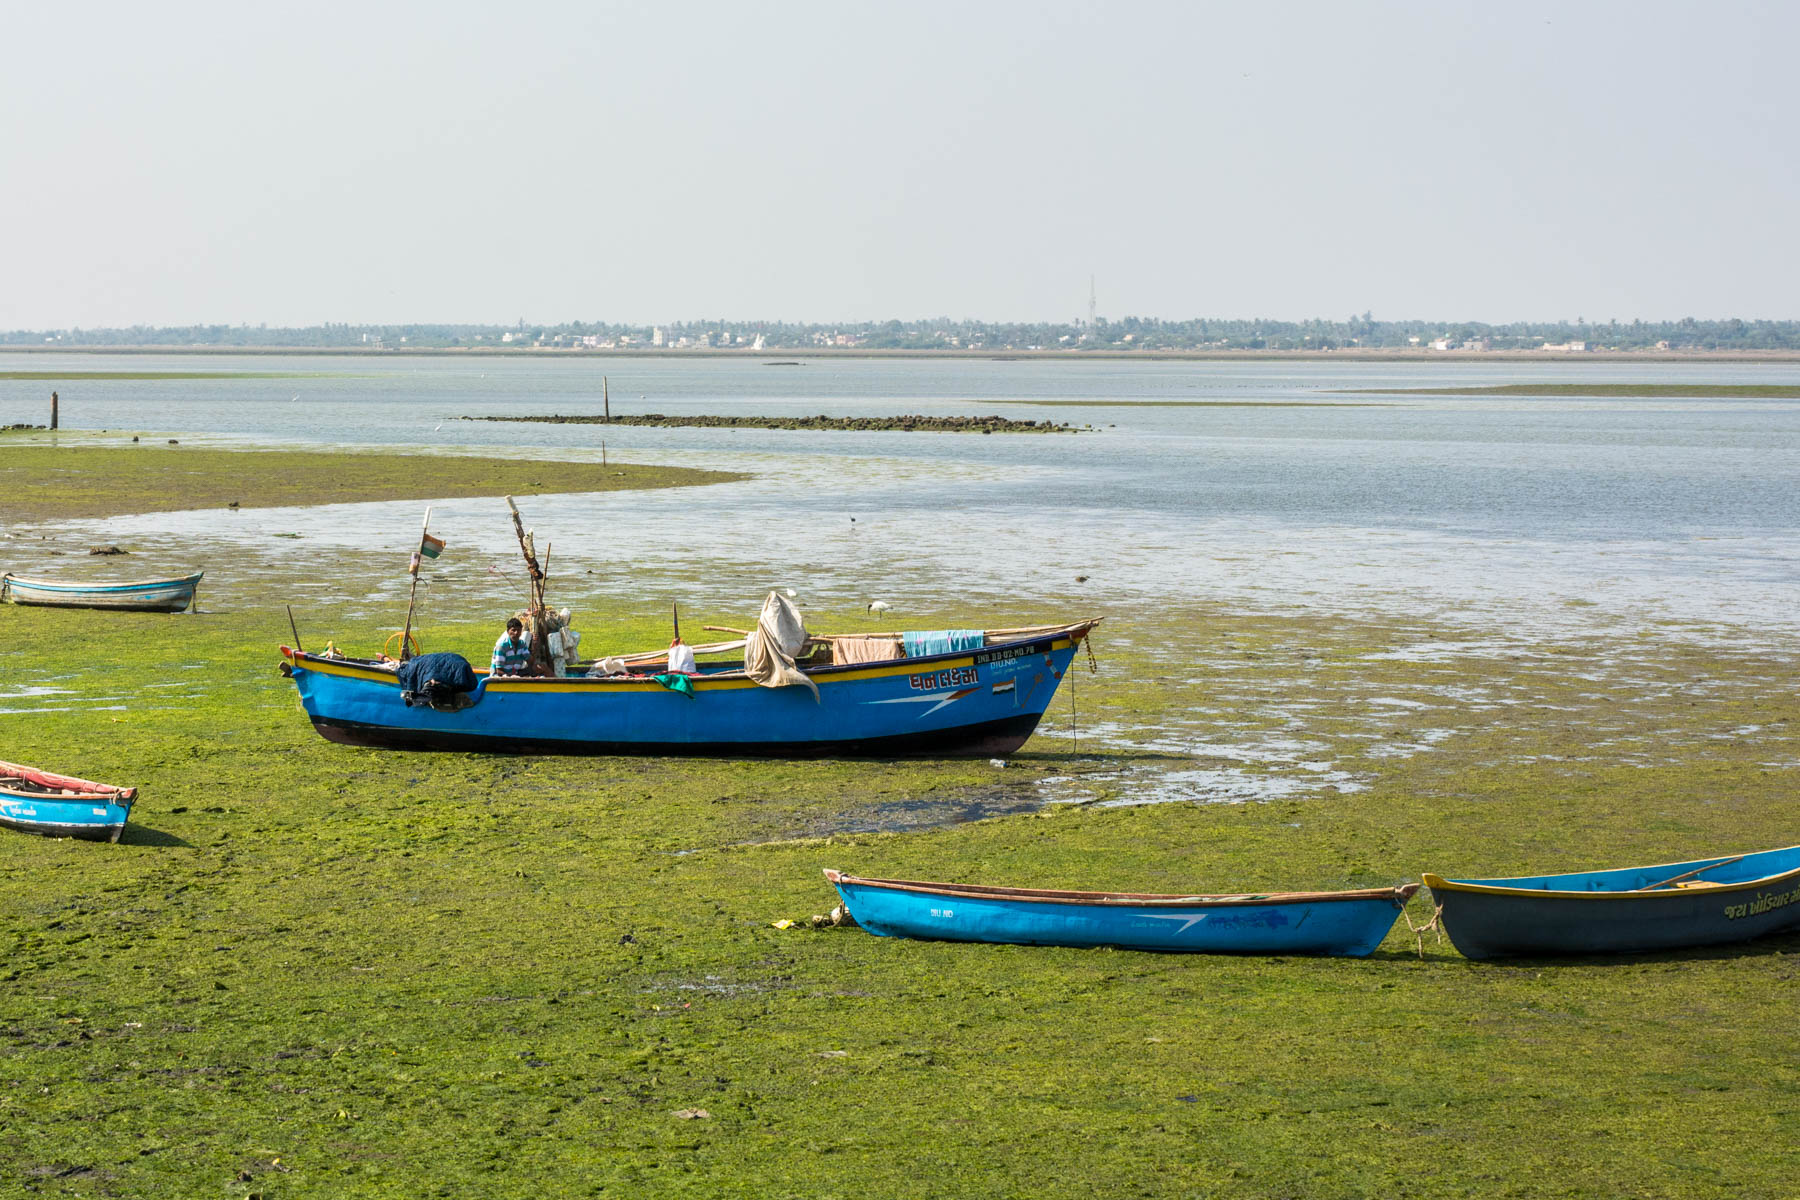 How to get from Palitana to Diu by bus - A man looking lost in a boat amongst the greens near Diu, Gujarat, India - Lost With Purpose